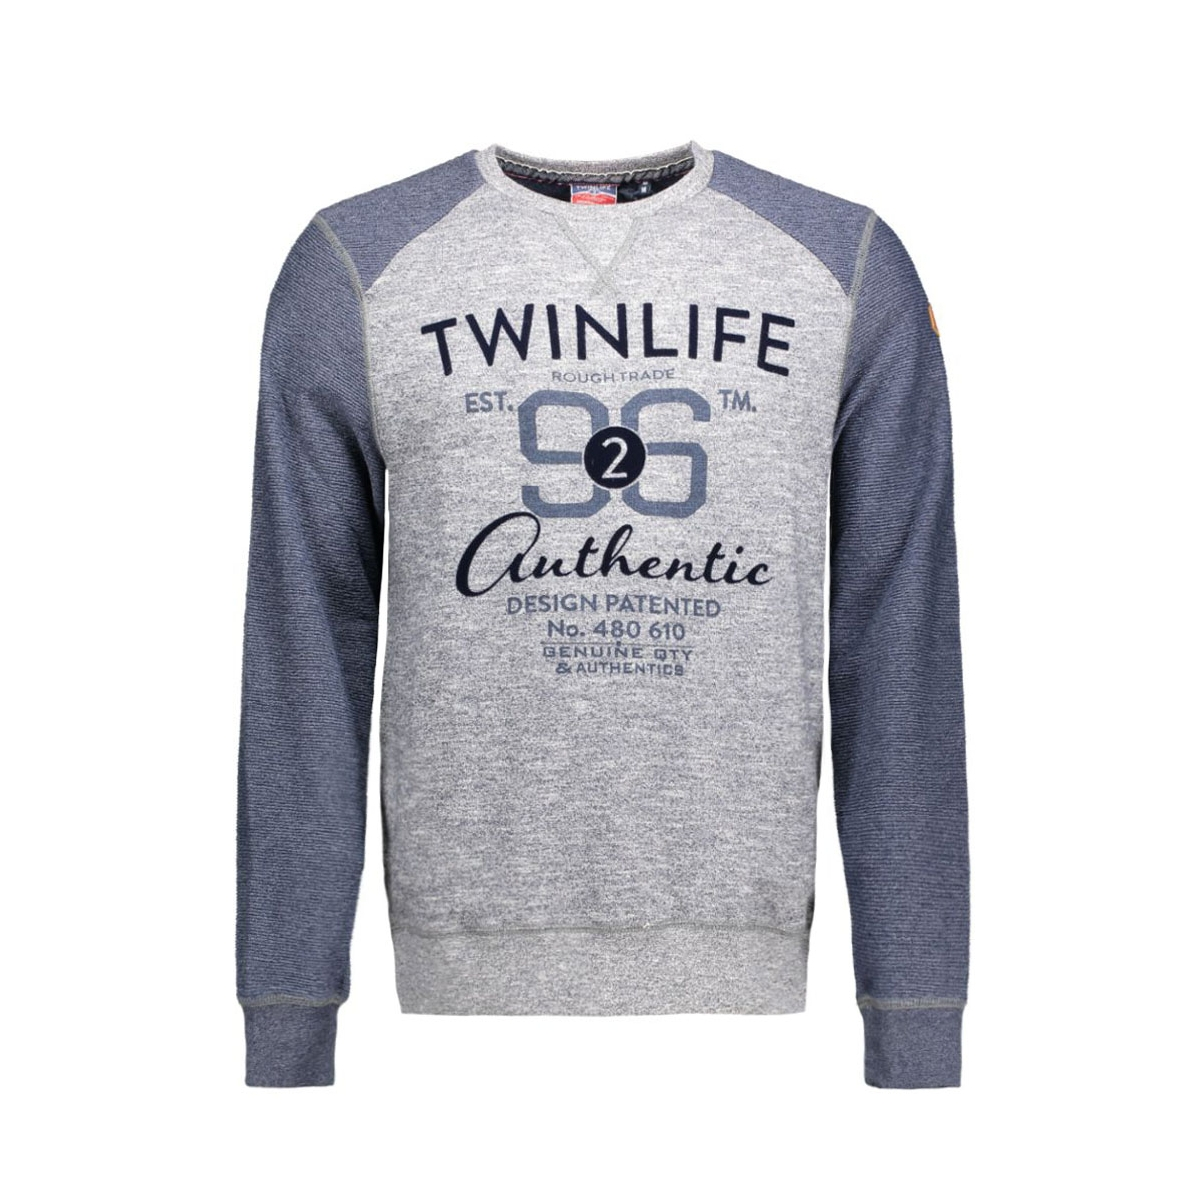 msw651431 twinlife sweater 6676